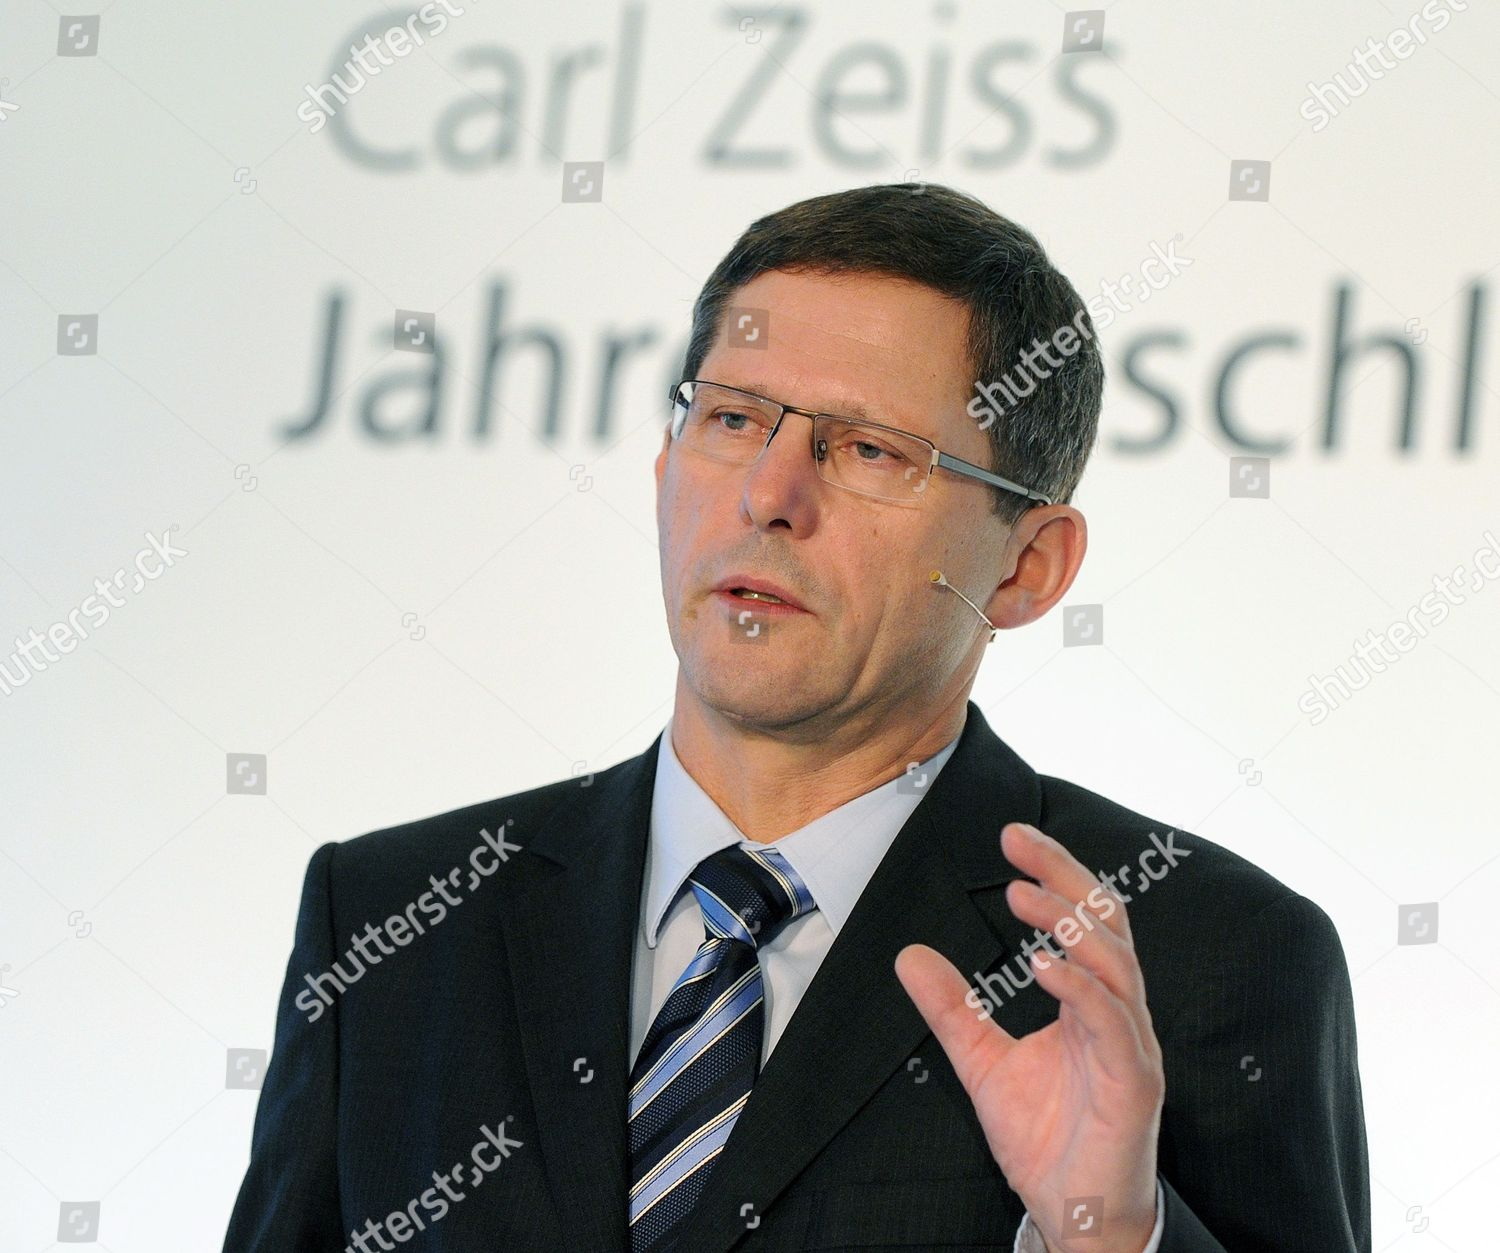 Chief Executive Officer Optics Group Carl Zeiss Editorial